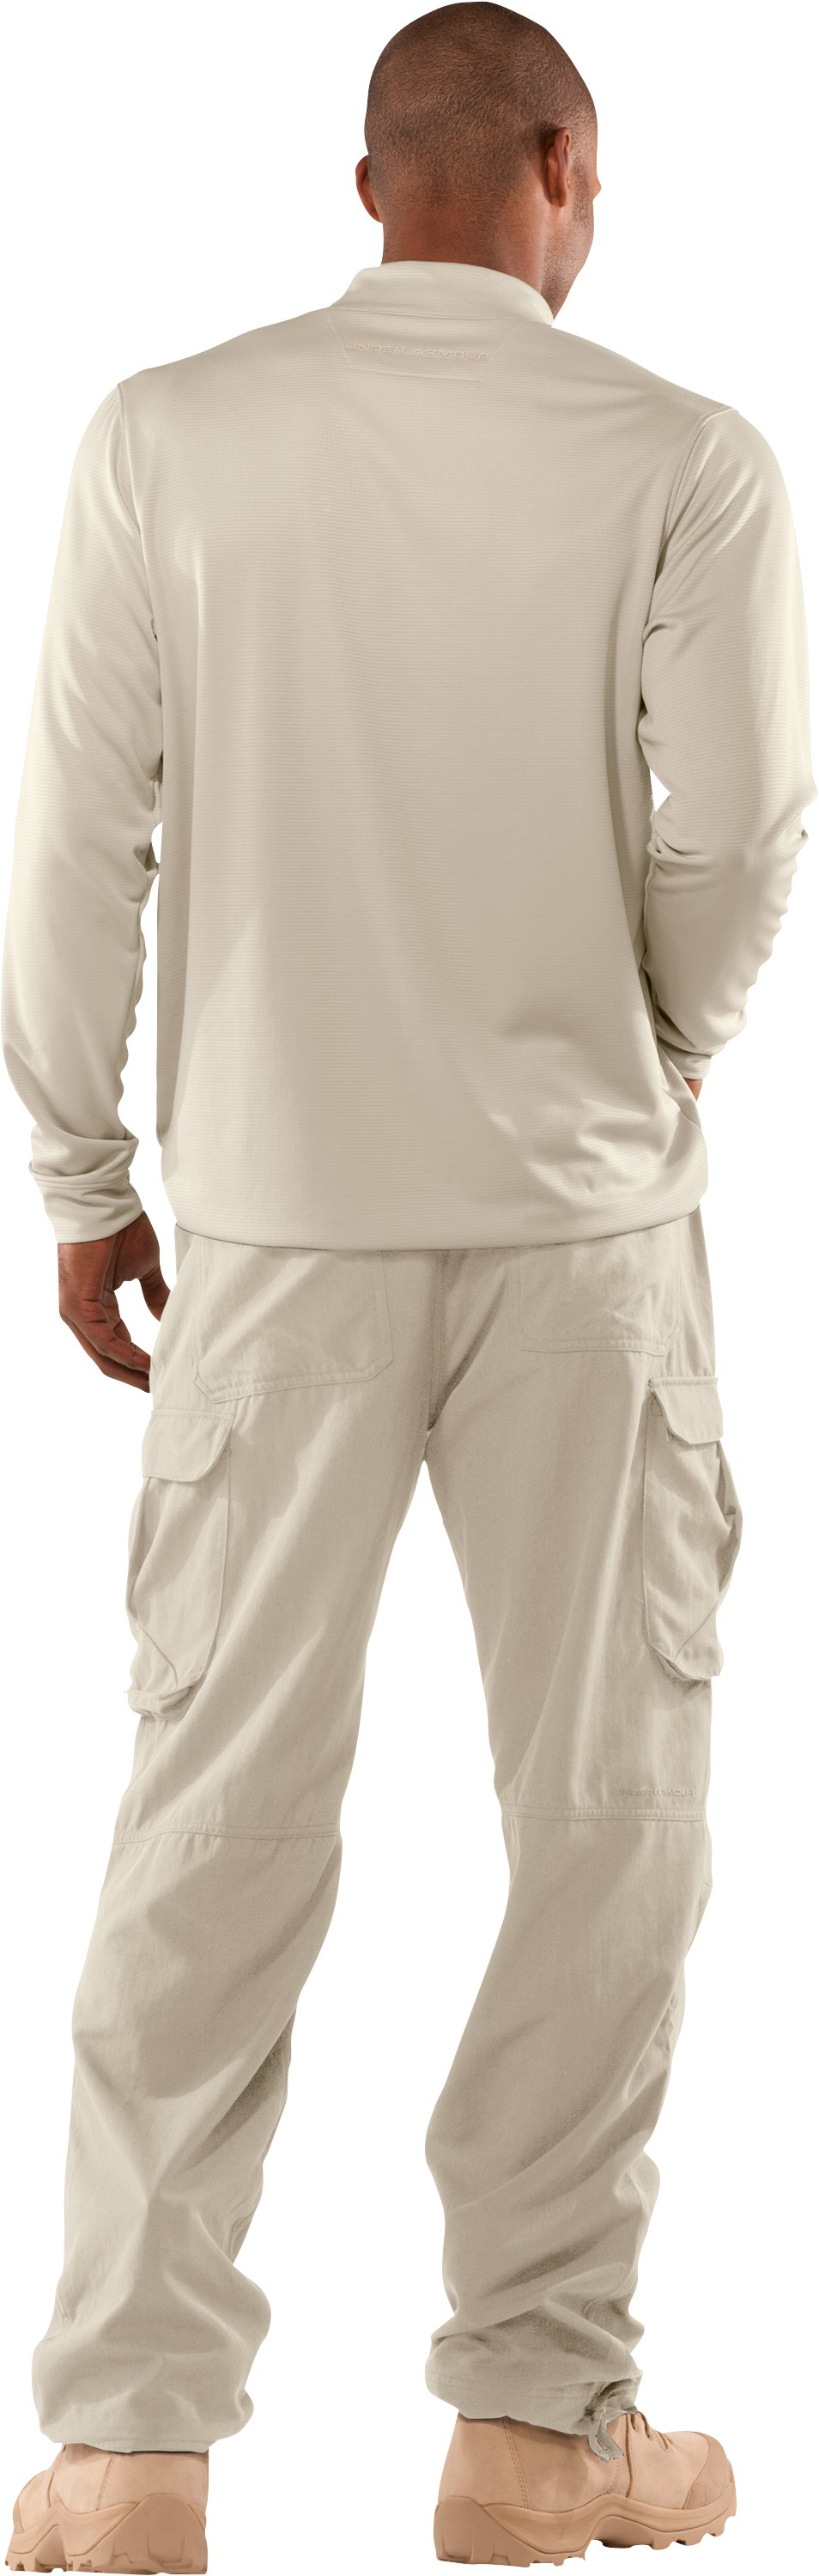 Men's Tactical Performance Field Pants, Desert Sand, Back